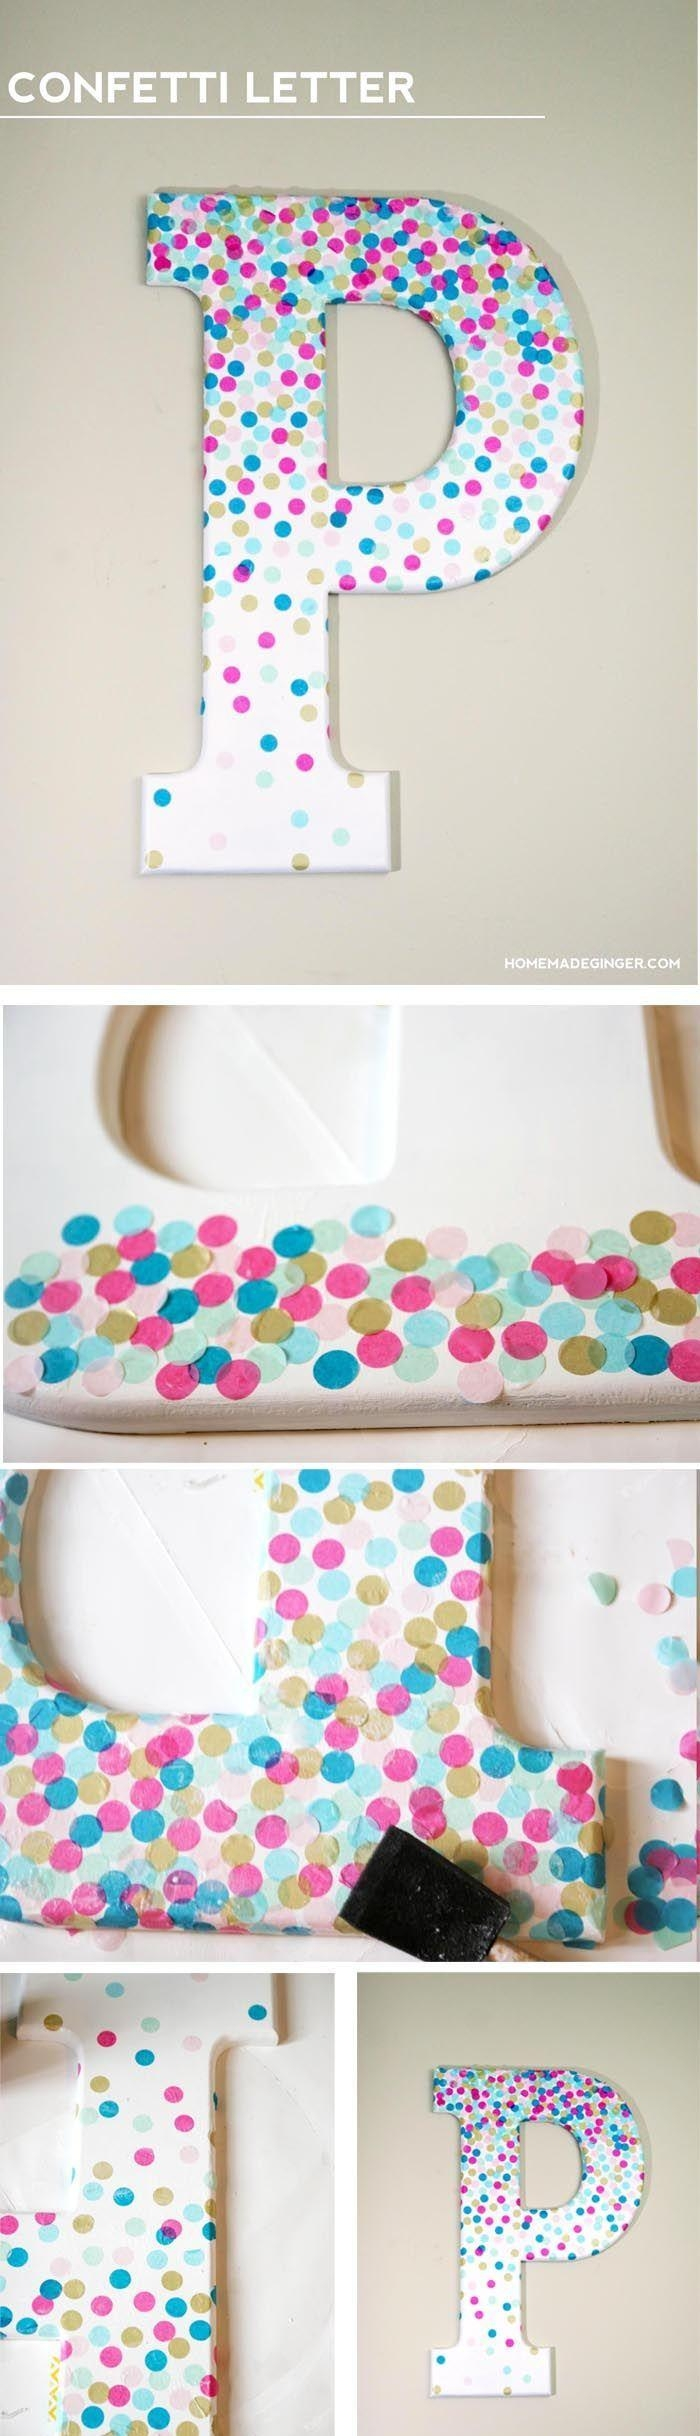 Get 20+ Decorative Wall Letters Ideas On Pinterest Without Signing Pertaining To Decorative Initials Wall Art (Image 9 of 20)